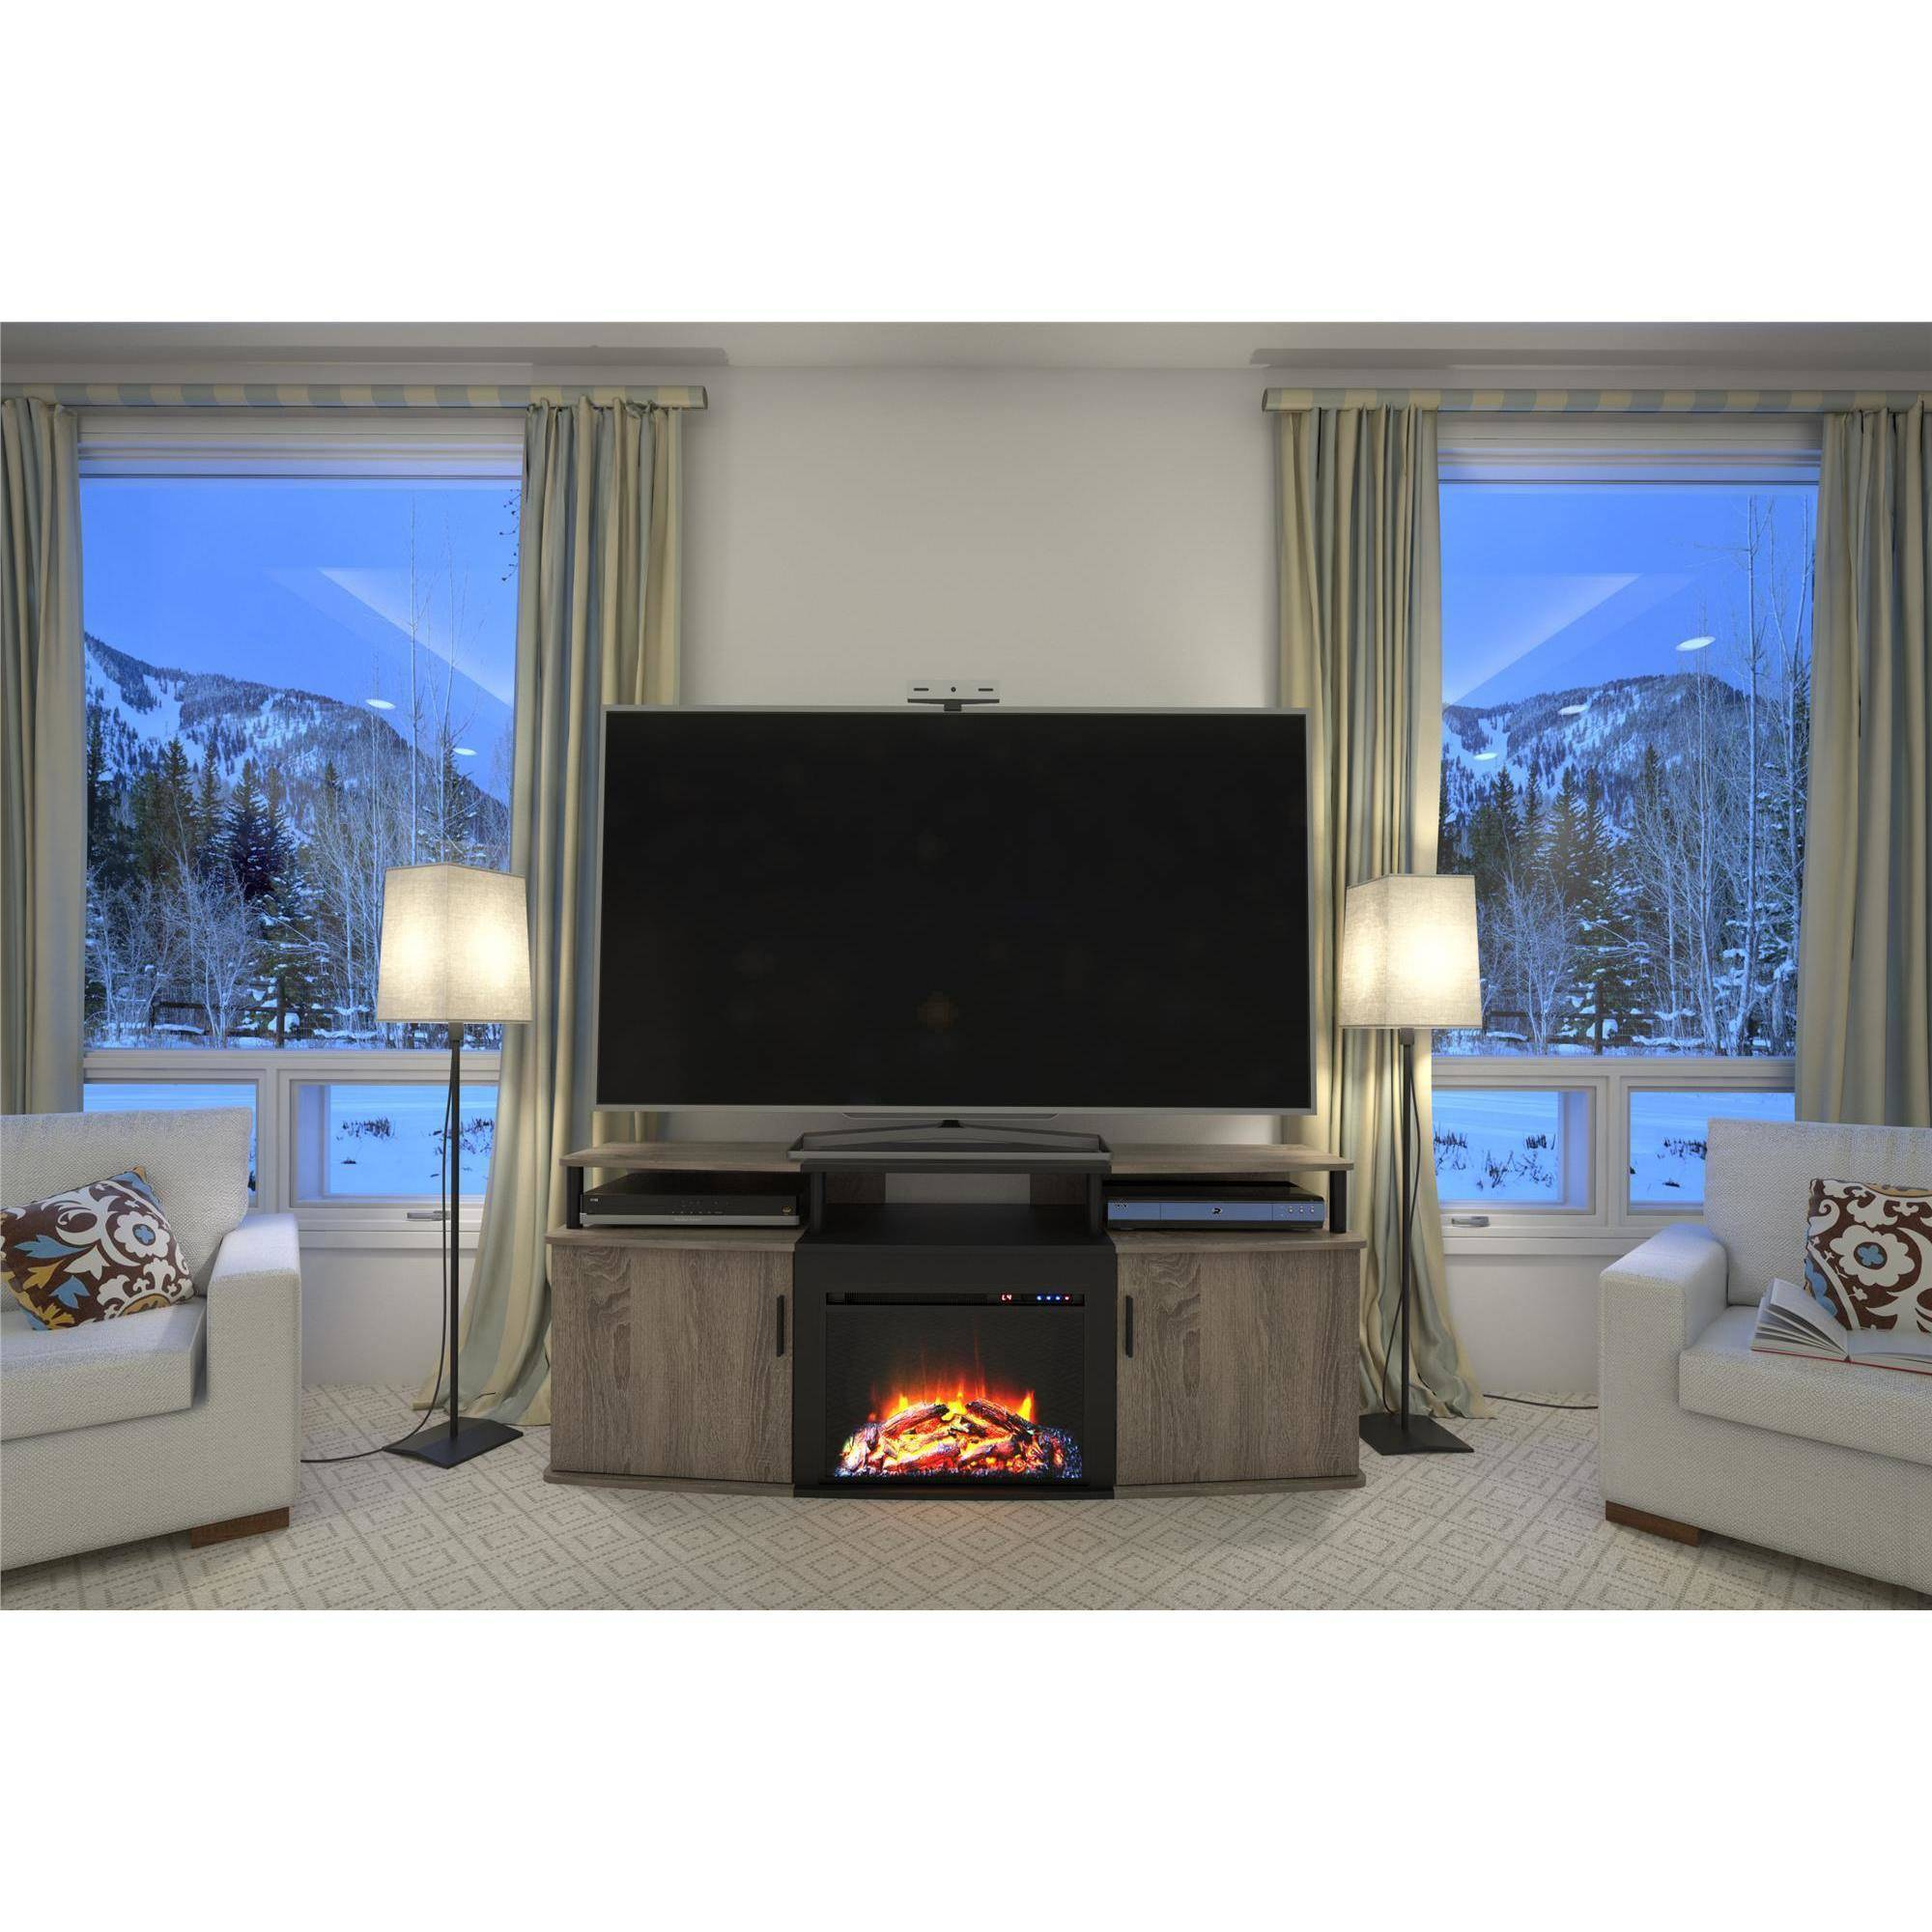 carson fireplace tv console for tvs up to 70 multiple colors ebay. Black Bedroom Furniture Sets. Home Design Ideas